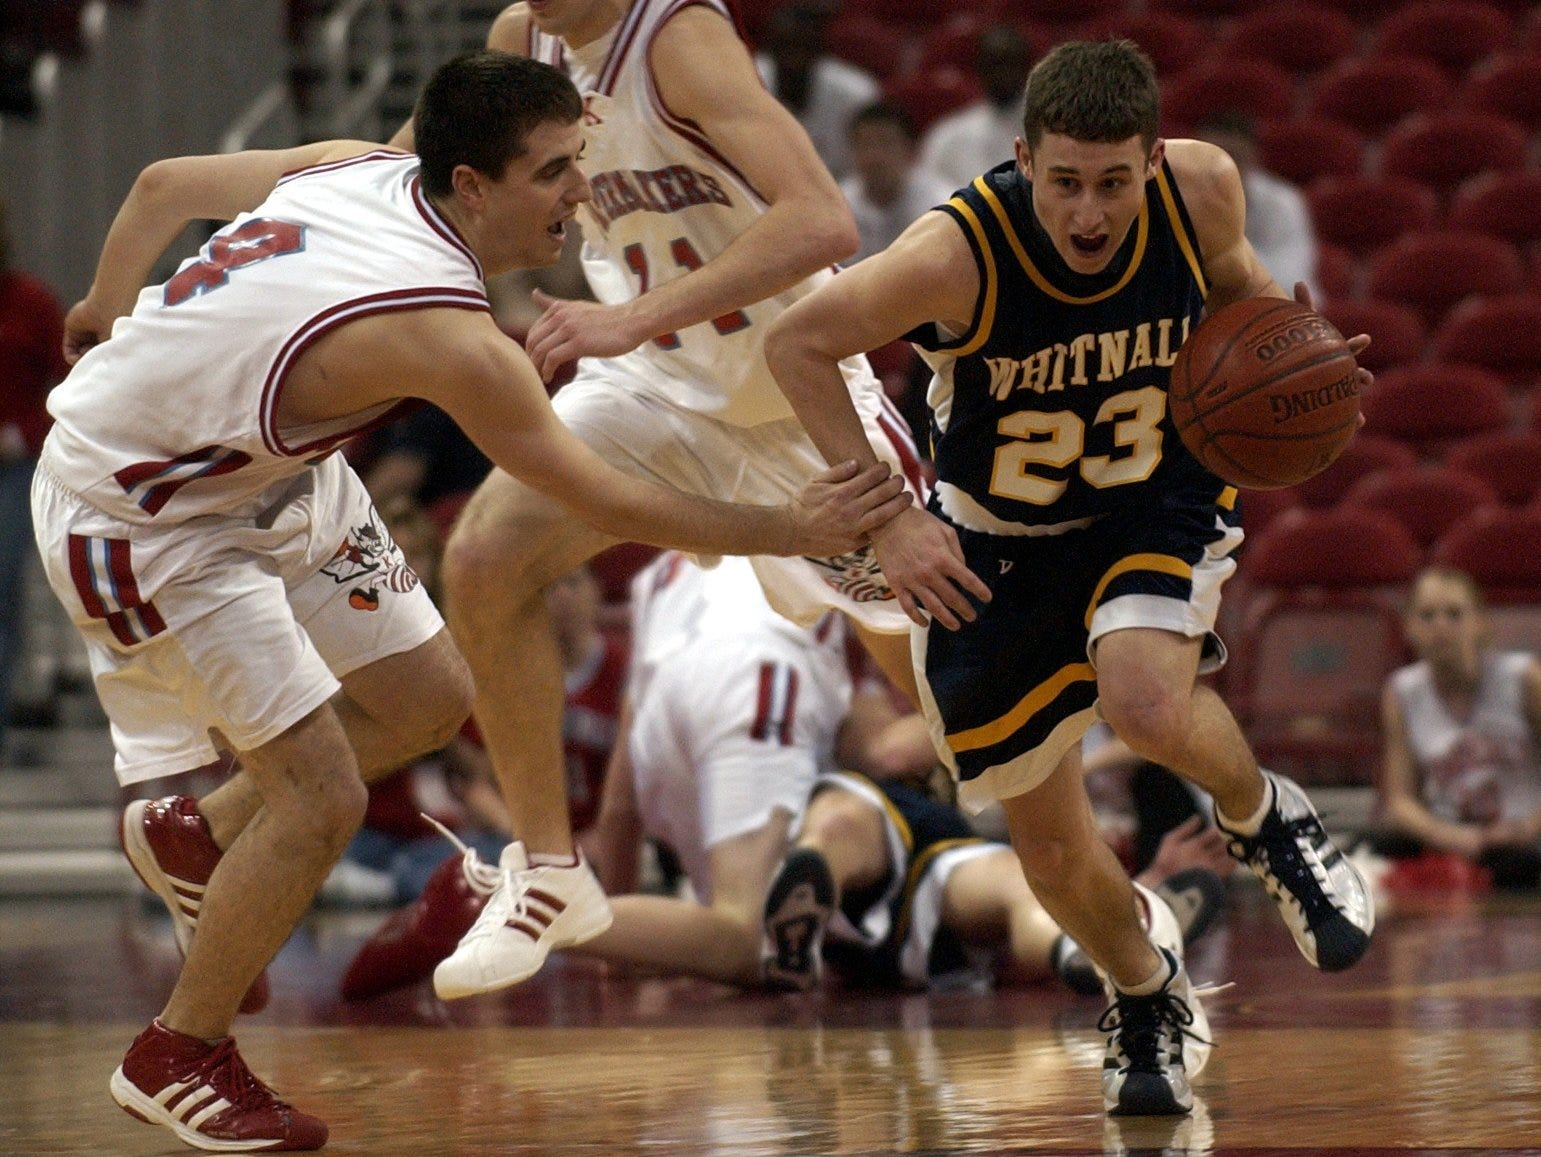 Whitnall's Nick Romans, (23) despite Kimberly's Mark Reider (4) efforts, makes the most of a loose ball, converting the play for a layup at the other end of the court. Kimberly prevailed 37-33 over Whitnall to advance in the WIAA Division 1 basketball quarterfinal game at the Kohl Center in Madison, Thursday, March 18th, 2004.